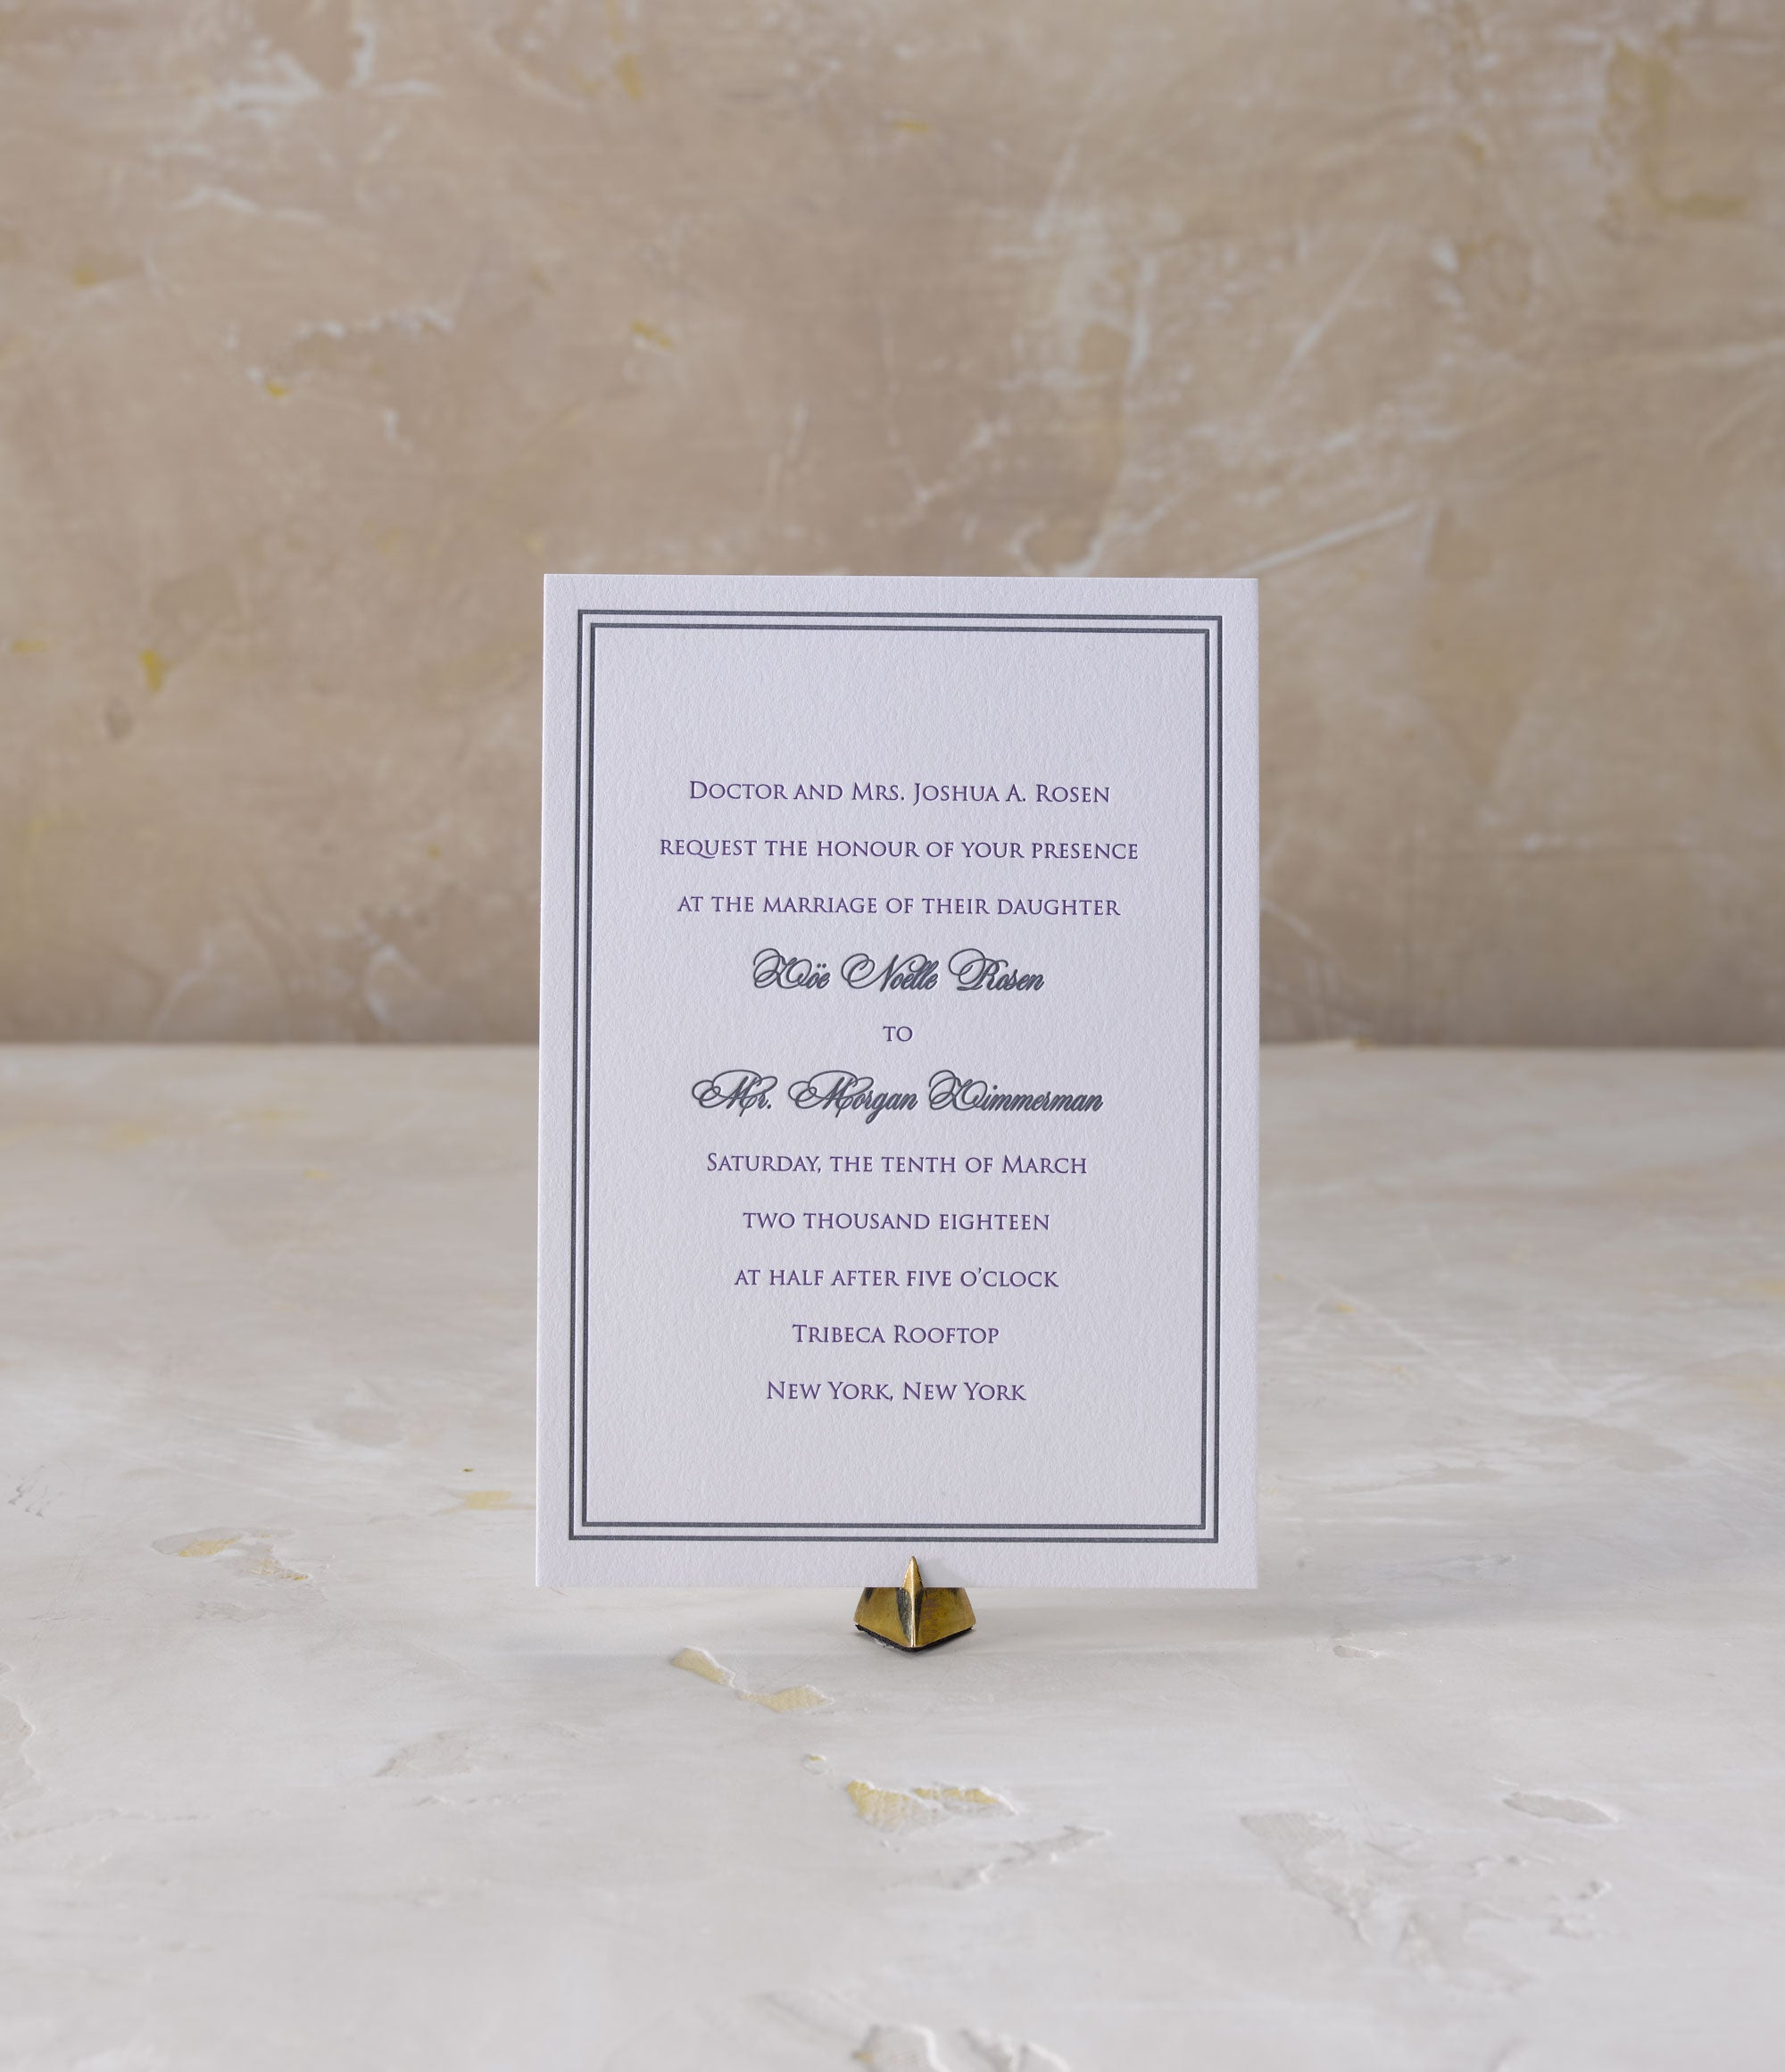 Zoe & Morgan is a letterpress wedding suite set in NYC. Would you like to be featured on #PPRealBride? Email us your photos to hello@pickettspress.com to be featured on our page! Shop here for more Pickett's Press wedding suites!